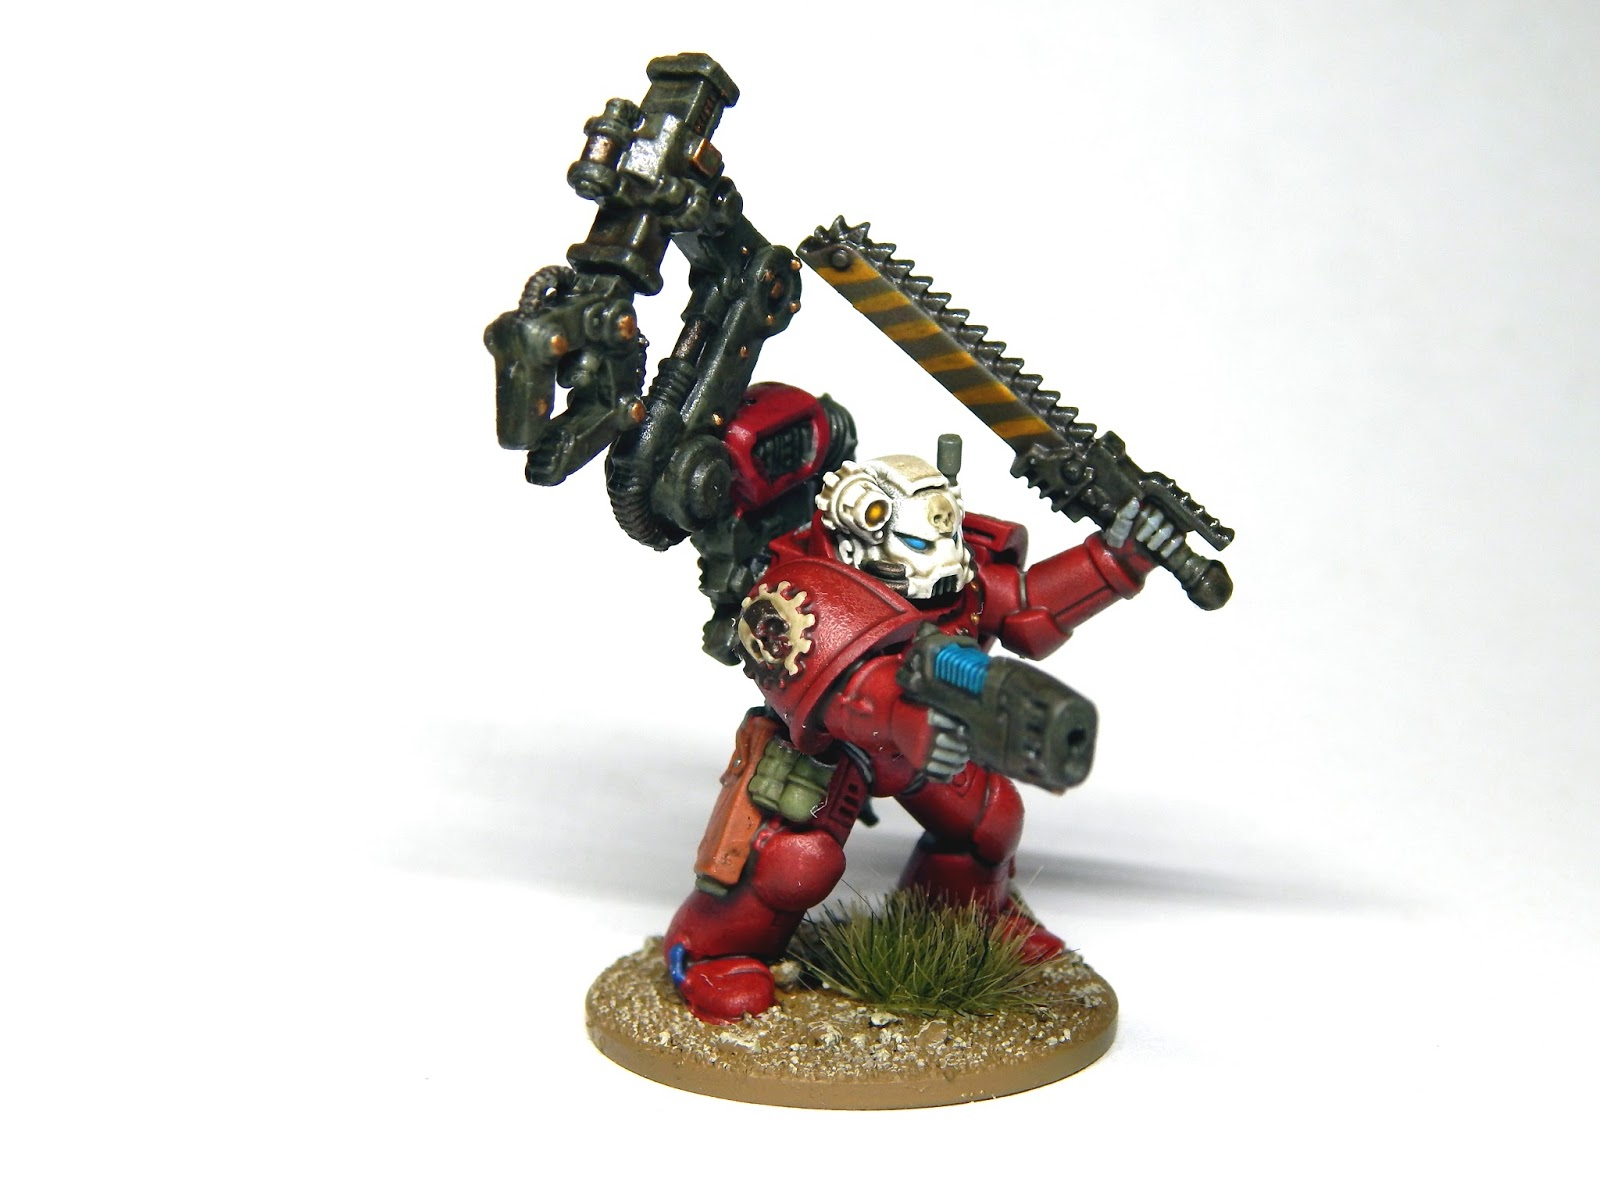 In Order To Run Almost Any Vehicle A 2nd Ed Army You Needed Include Techmarine Your List So Here He Is Plastic Metal Kit Bash